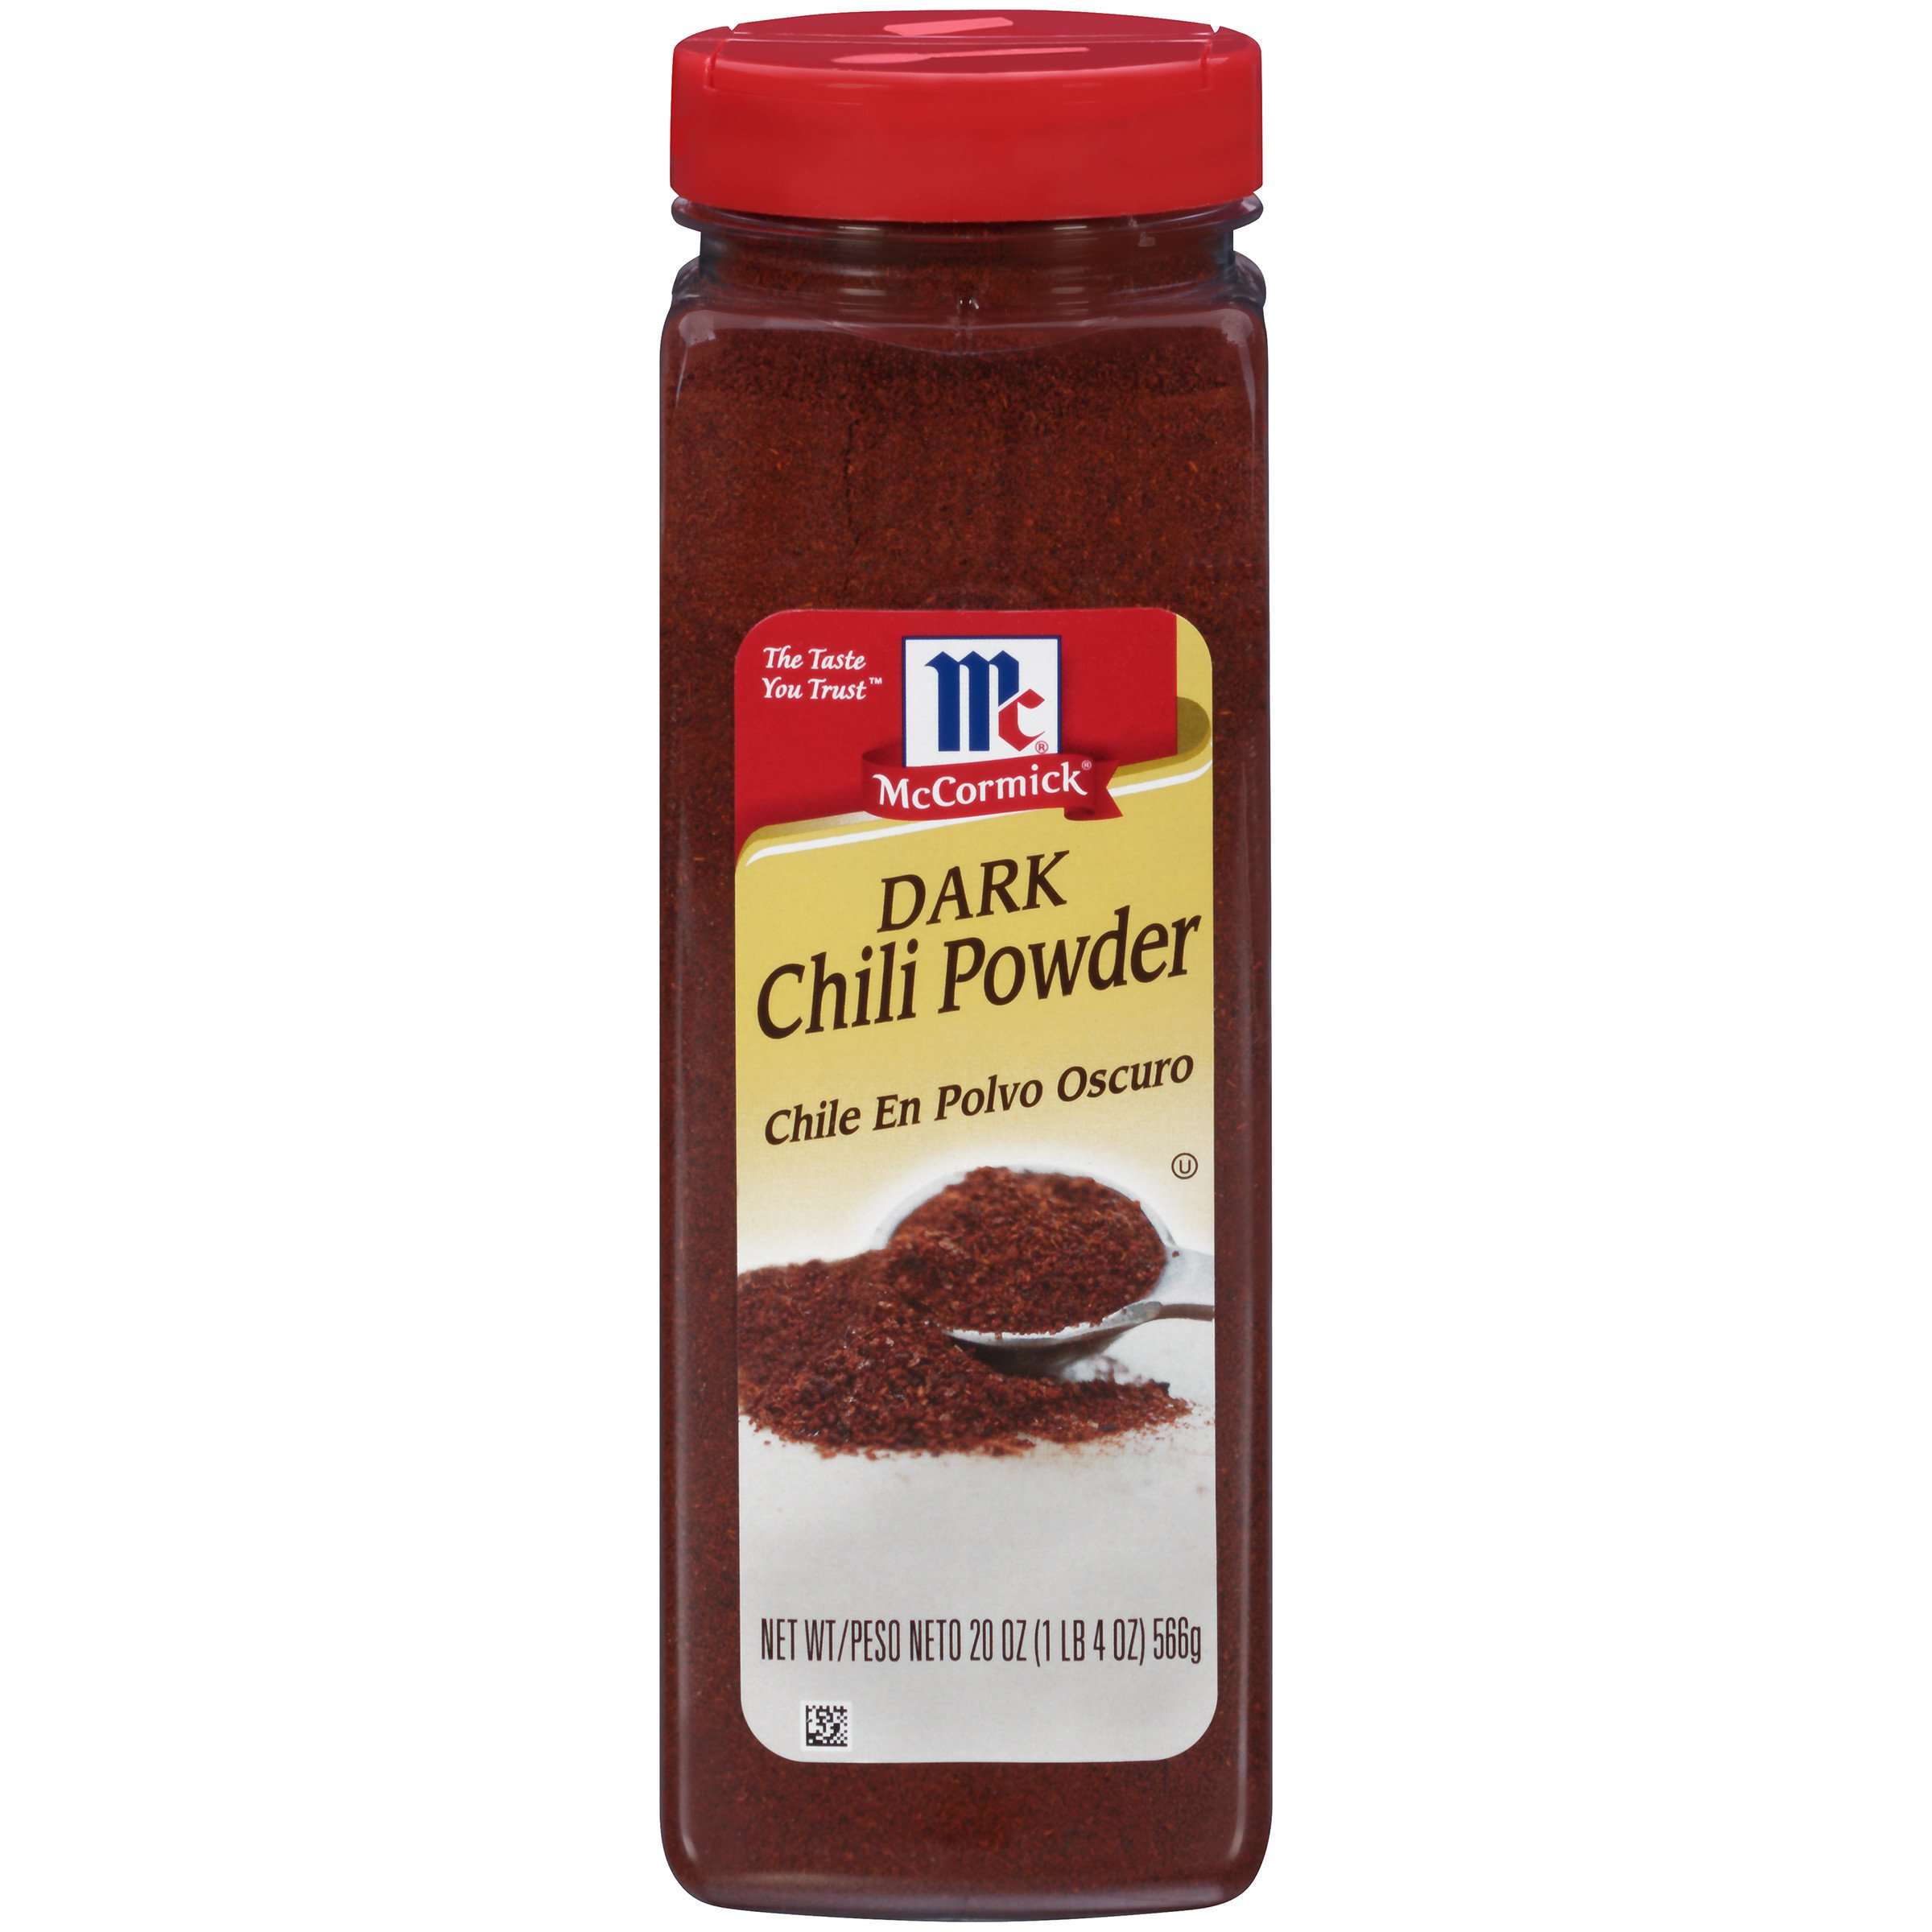 McCormick Dark Chili Powder, 20 oz